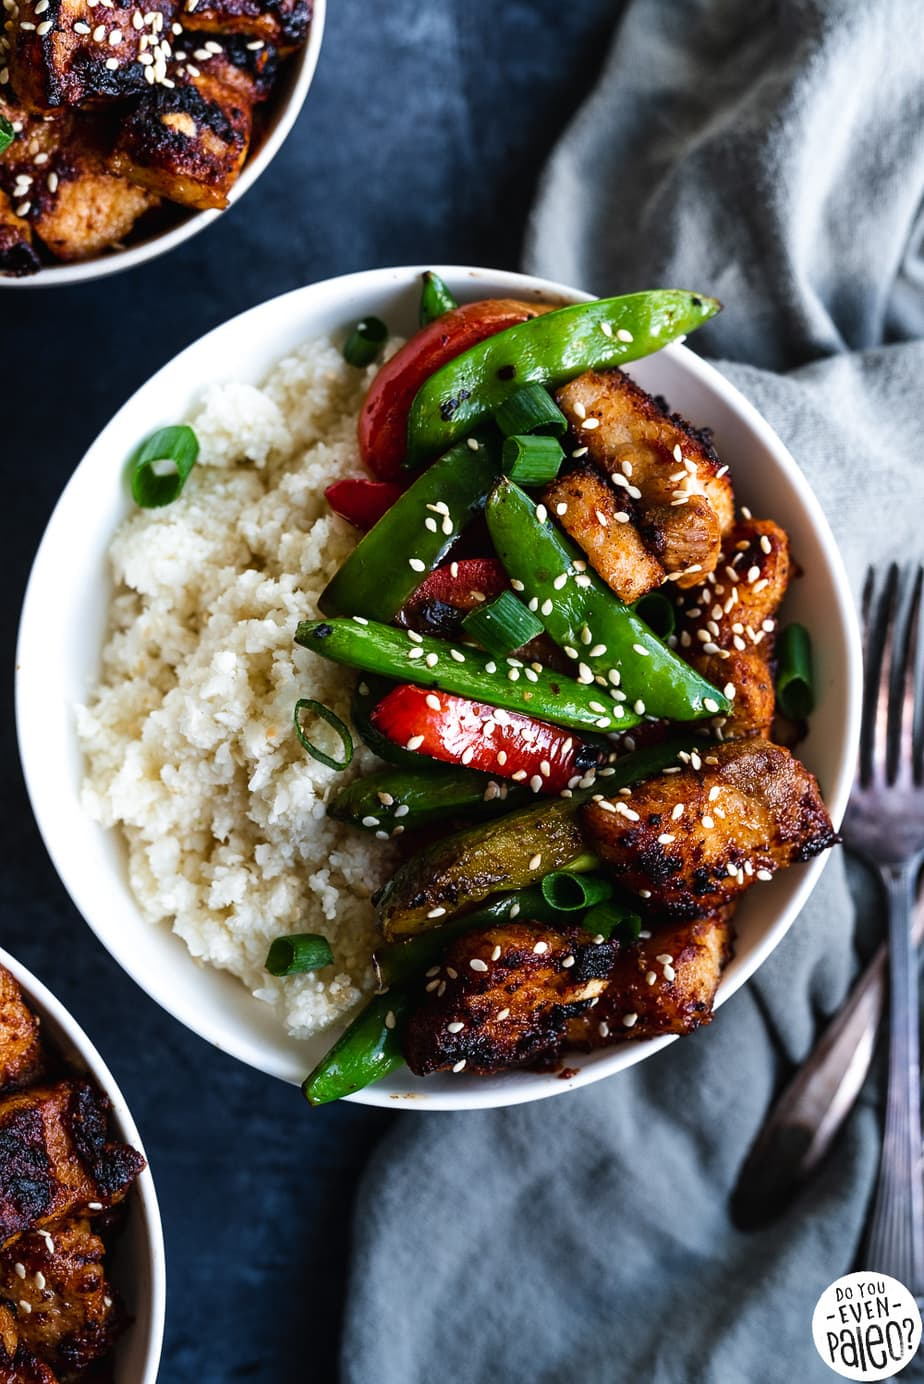 Paleo Pork Belly Stir Fry Recipe with veggies and cauliflower rice in a white bowl on a dark background by DoYouEvenPaleo.net